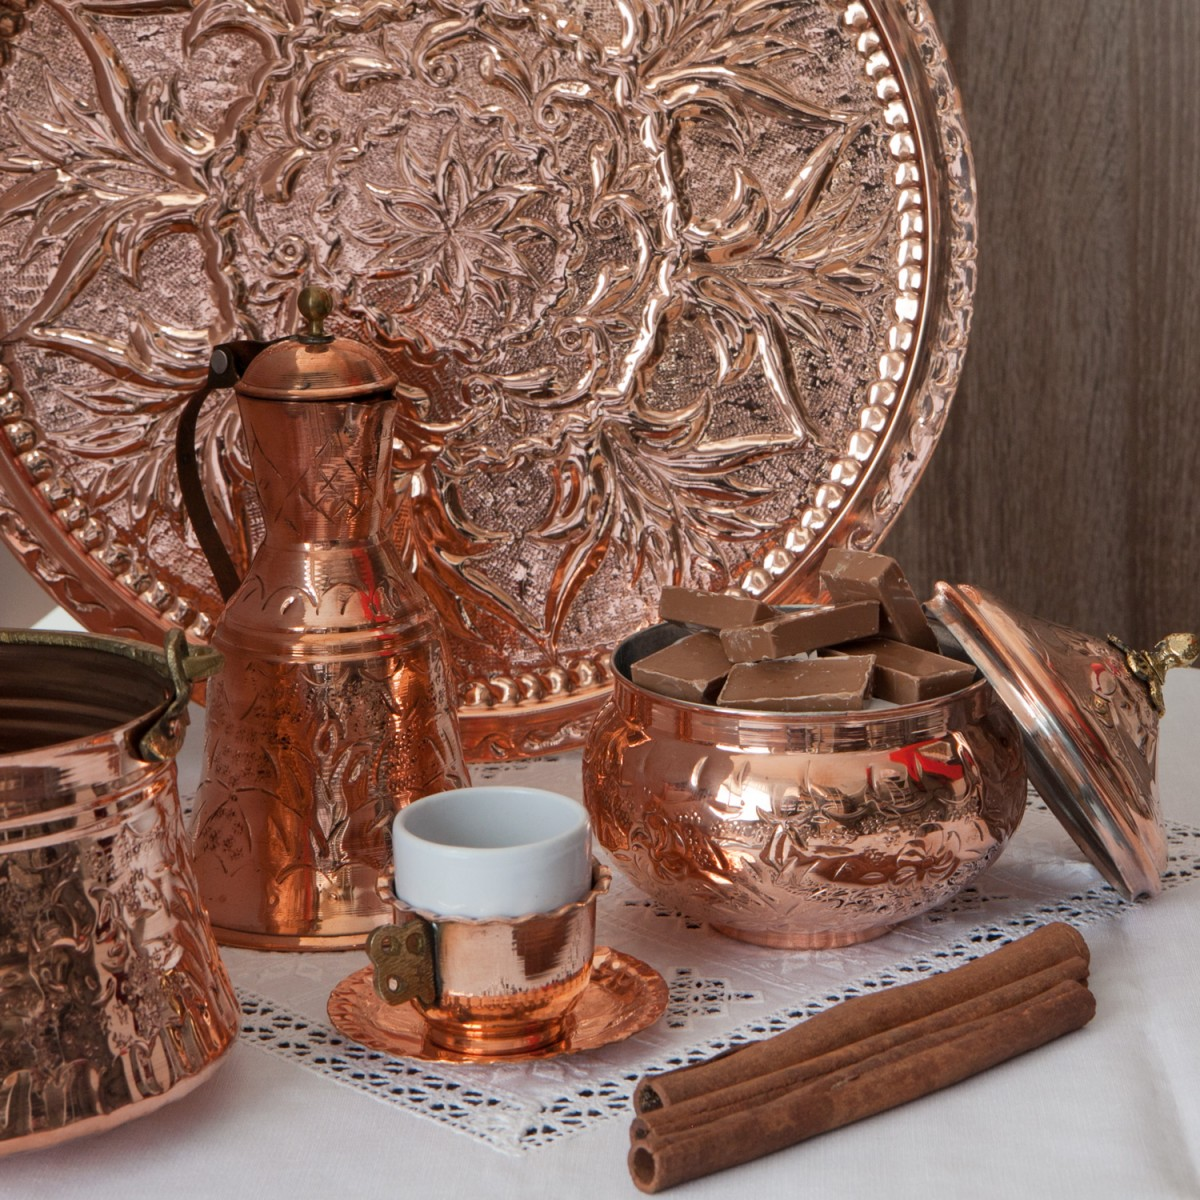 Hammered Copper Decorative Pitcher-1